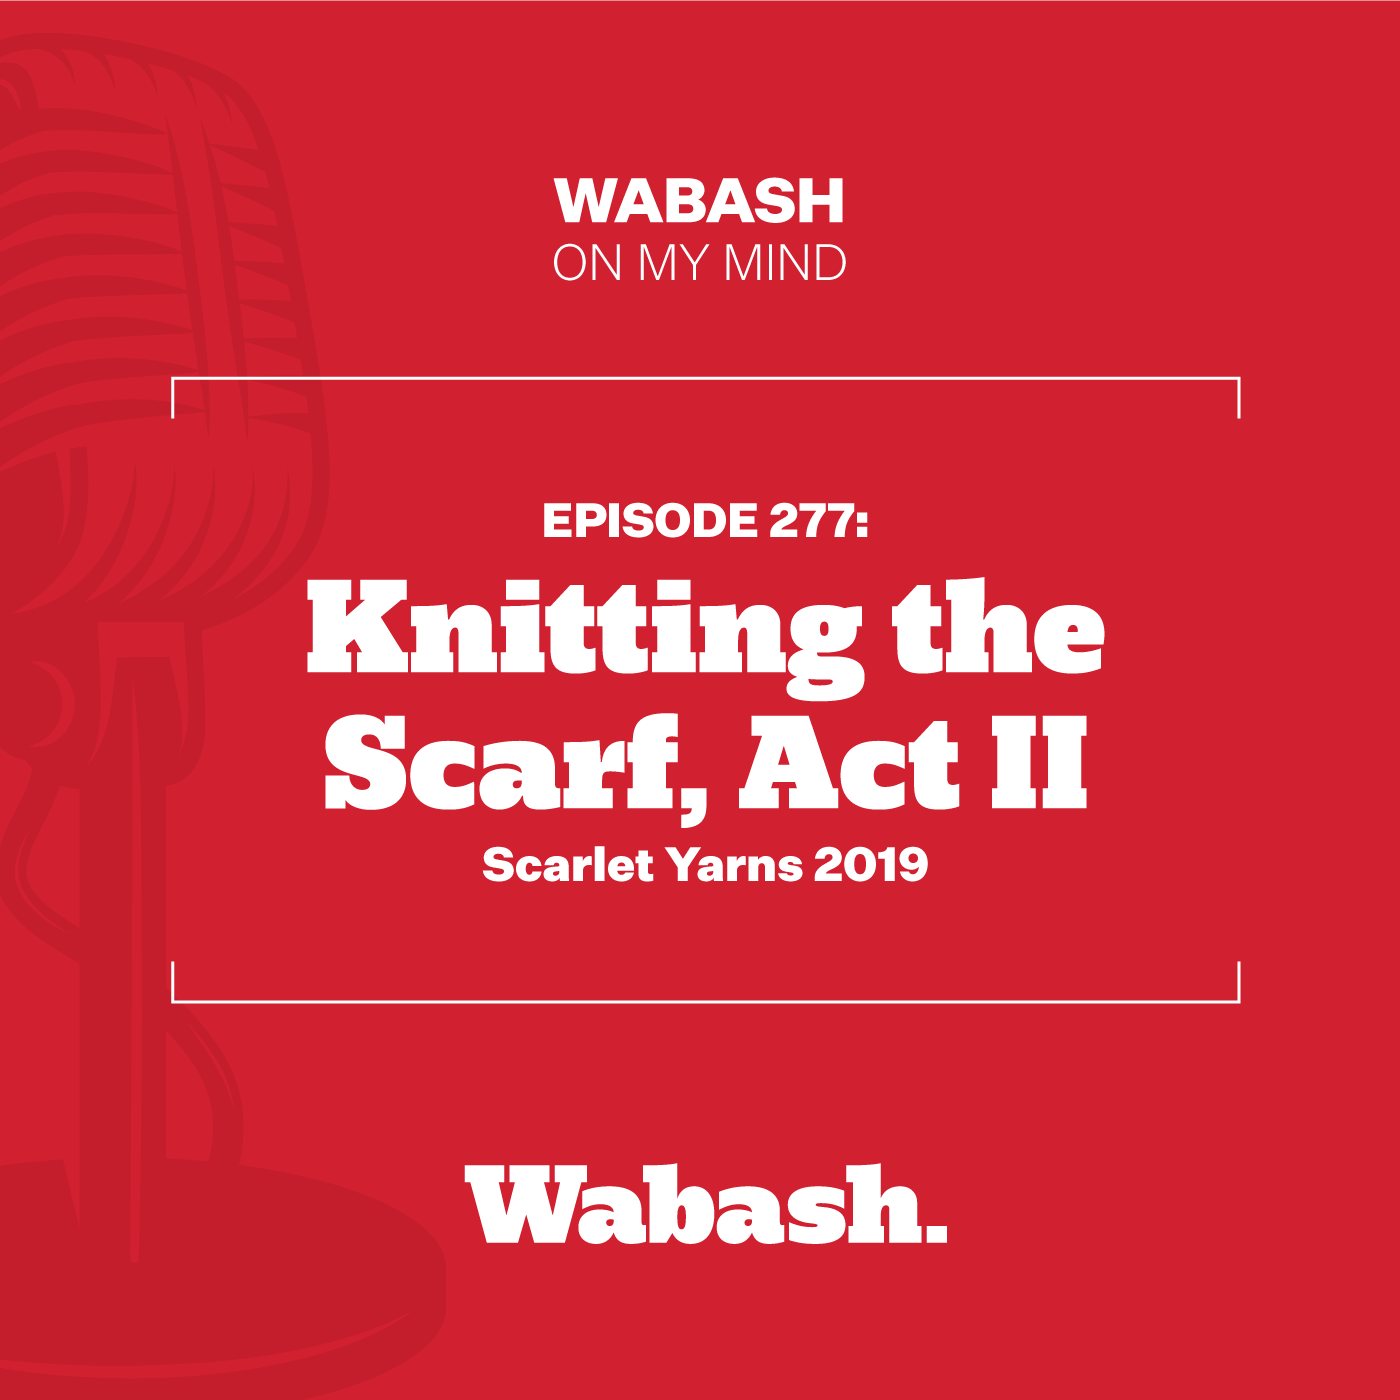 #277: Knitting the Scarf, Act II (Scarlet Yarns 2019)